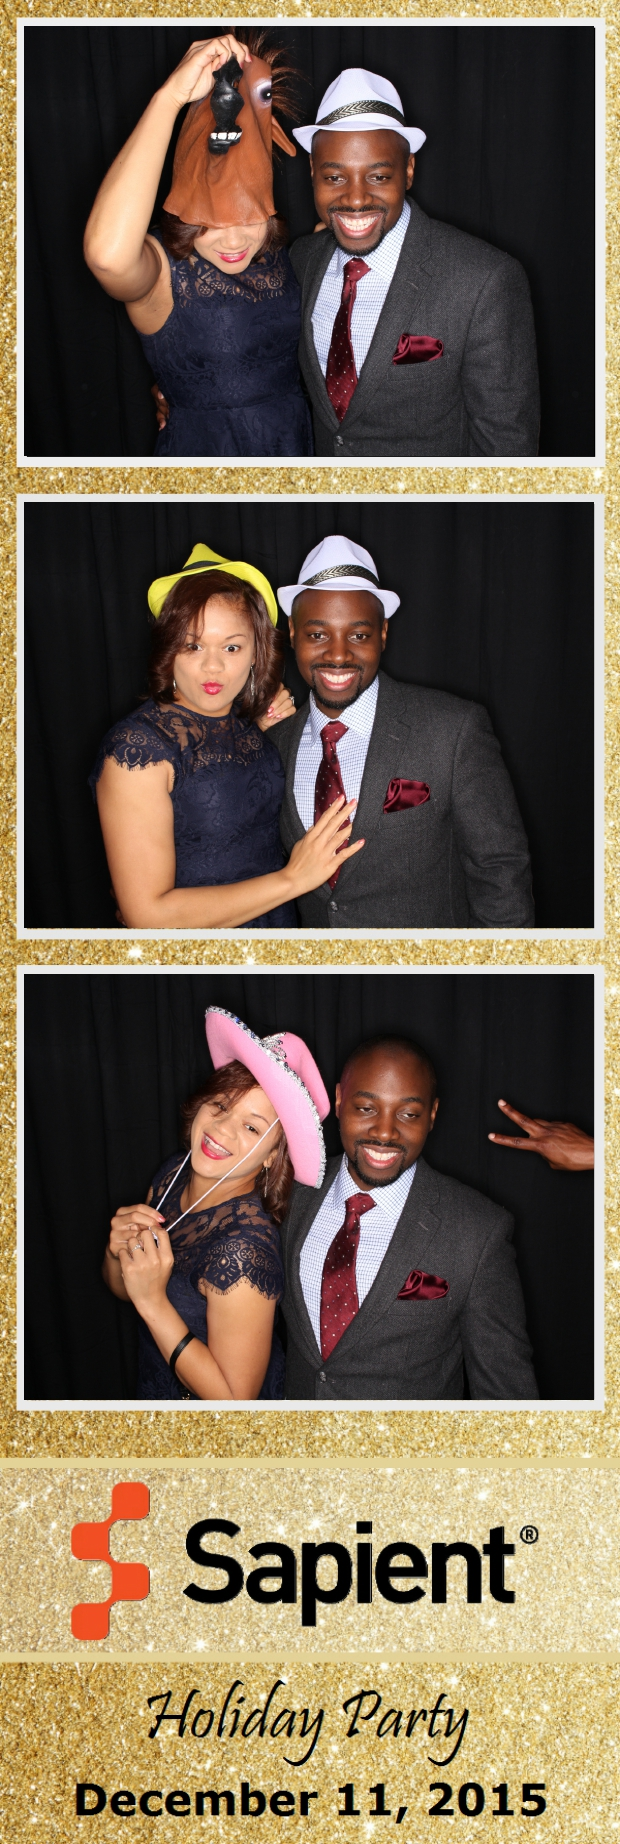 Guest House Events Photo Booth Sapient Holiday Party (79).jpg